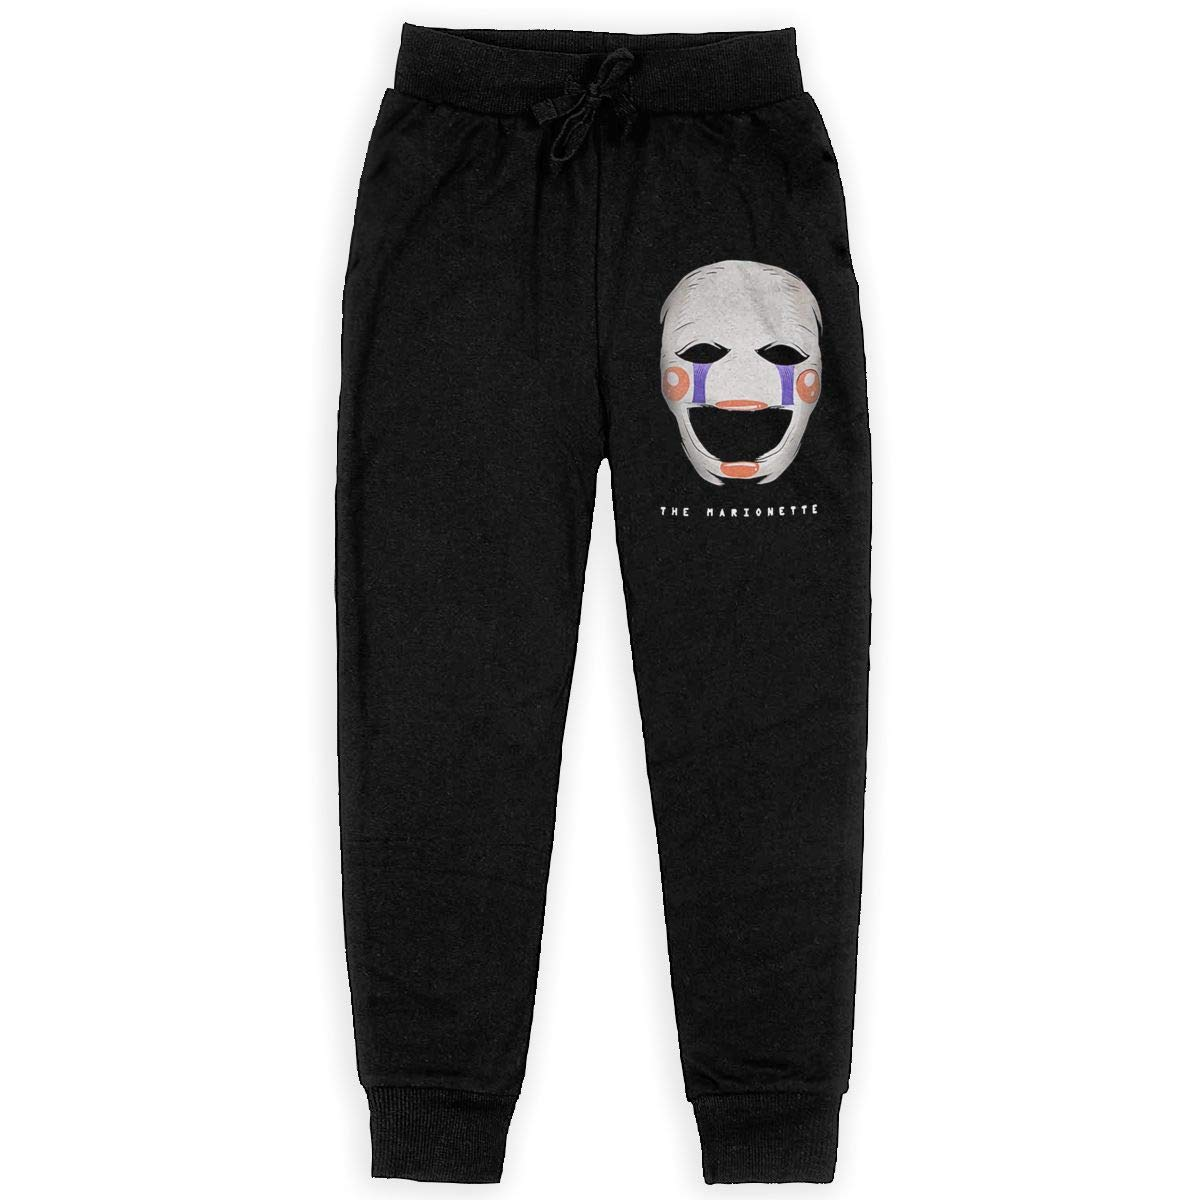 Five Nights at Freddys Marionette Big Boys Girls Casual Jogger Soft Training Pants Elastic Waist